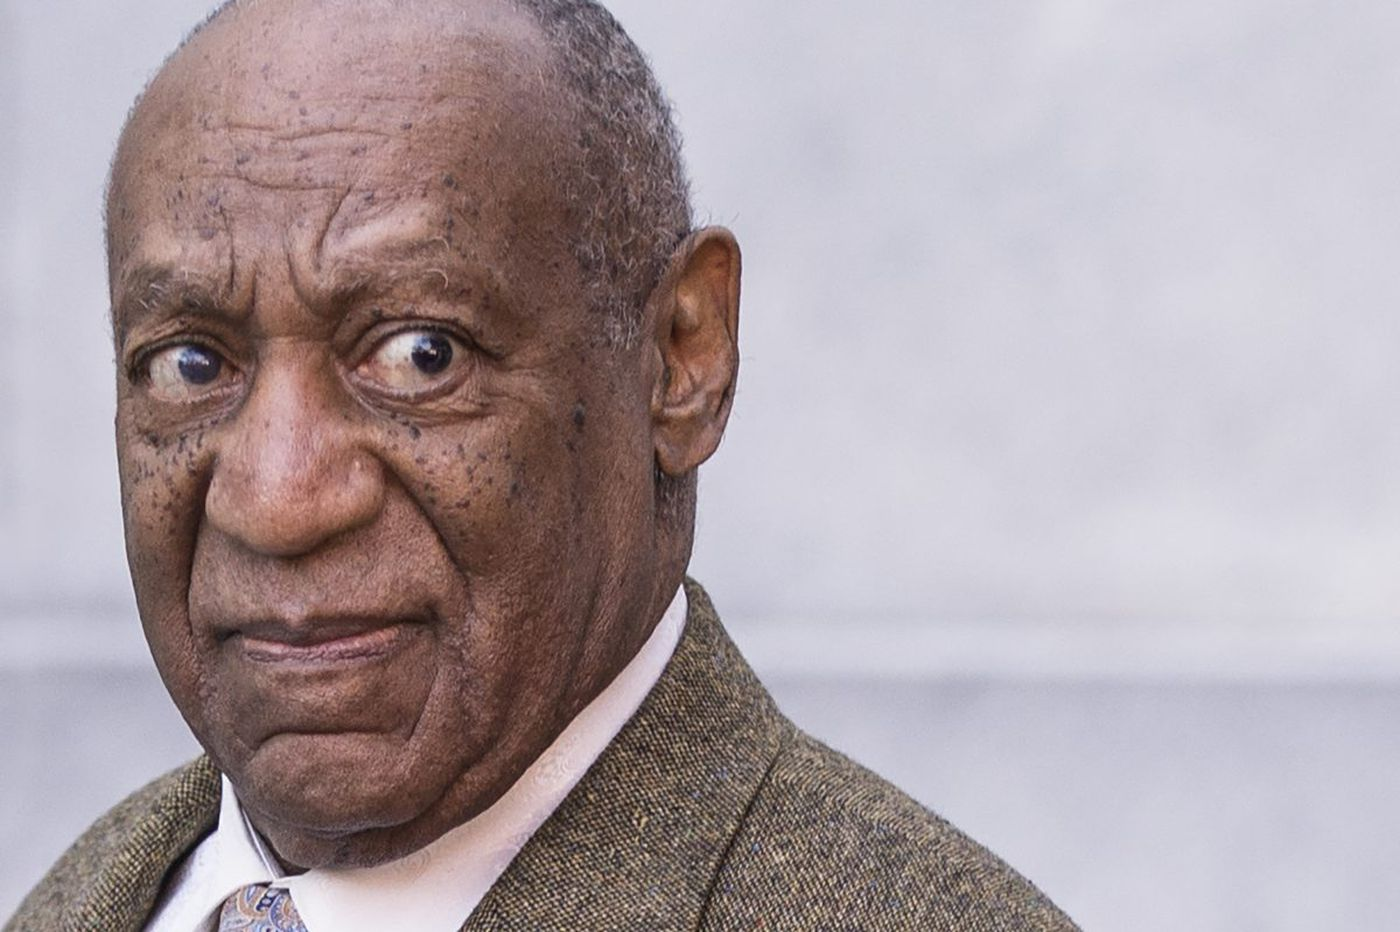 Bill Cosby's return to court marked by hostility, accusations, disputes over evidence